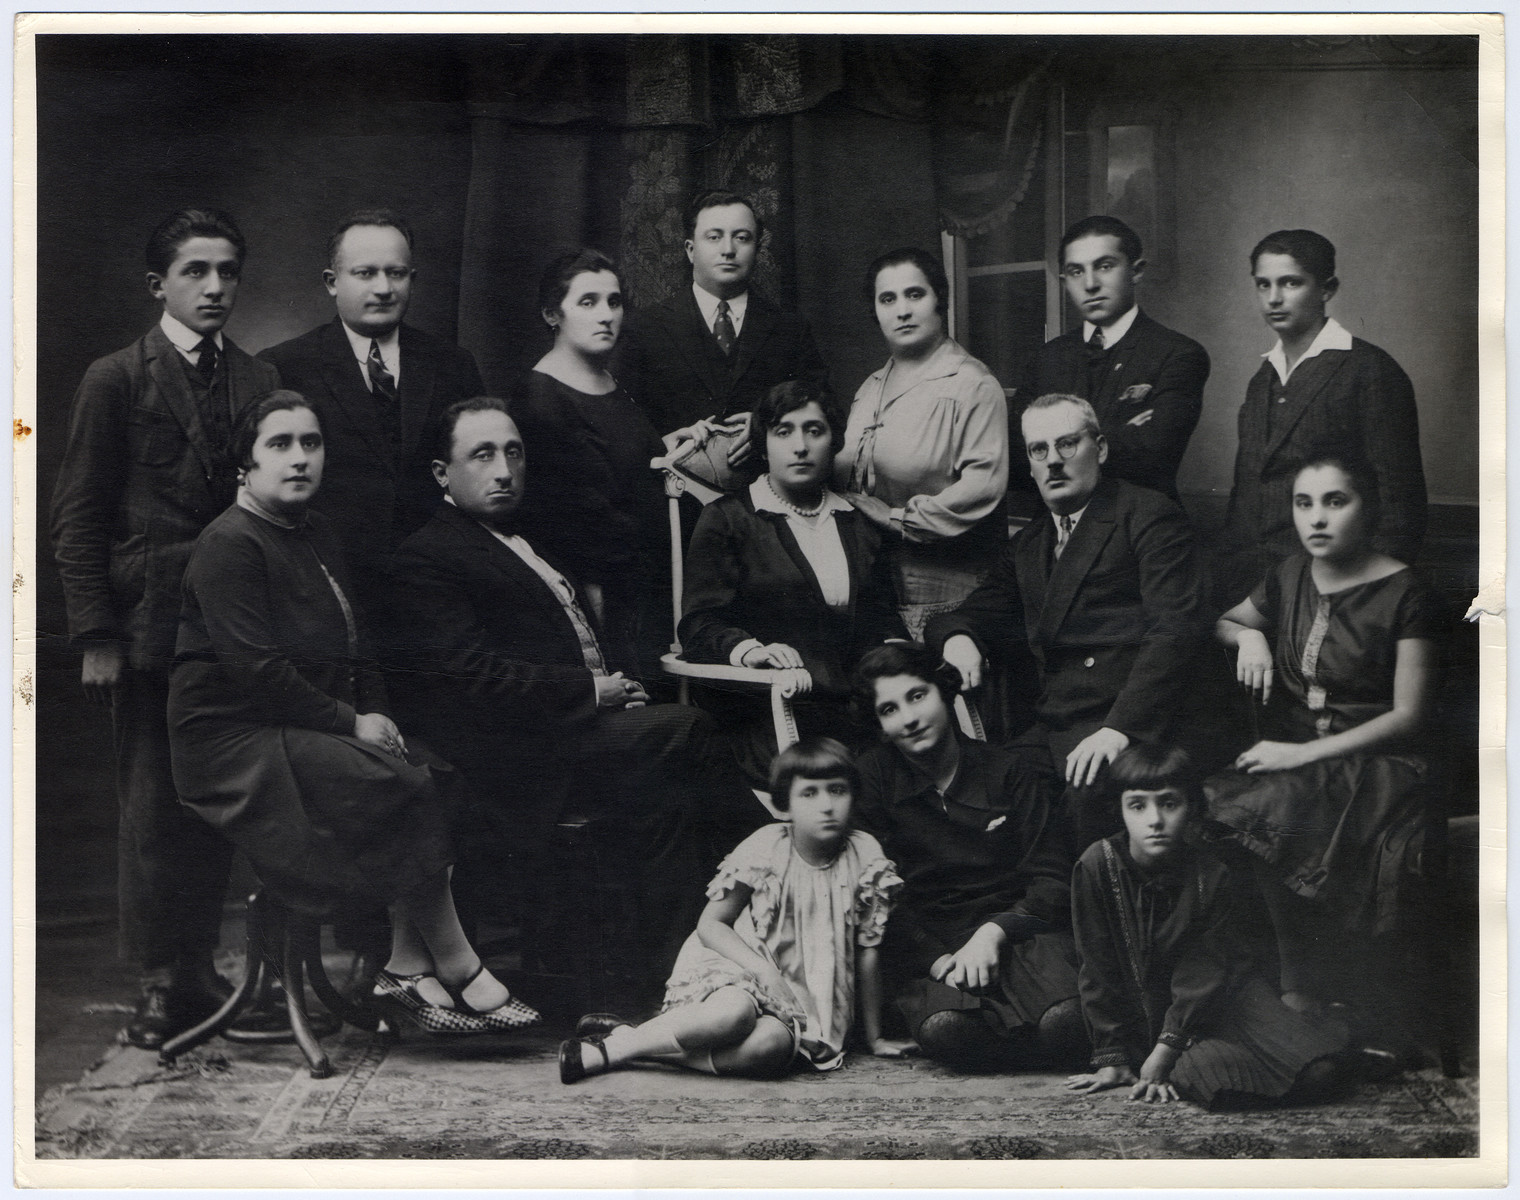 Group portrait of the Remz and Wolf families in Eisiskes.  Pictured are Gertrude (nee Remz), Louis and Frances Wolf (front, left), and Gertrude's siblings and their spouses Rifka and Zalman Rewin, Hershel and Stichel Remz and their children, Lolke, Olla (front, right), Gabke and Israel Remz and Marasna and Lazer Alpern and their children, Isaac and Zina.